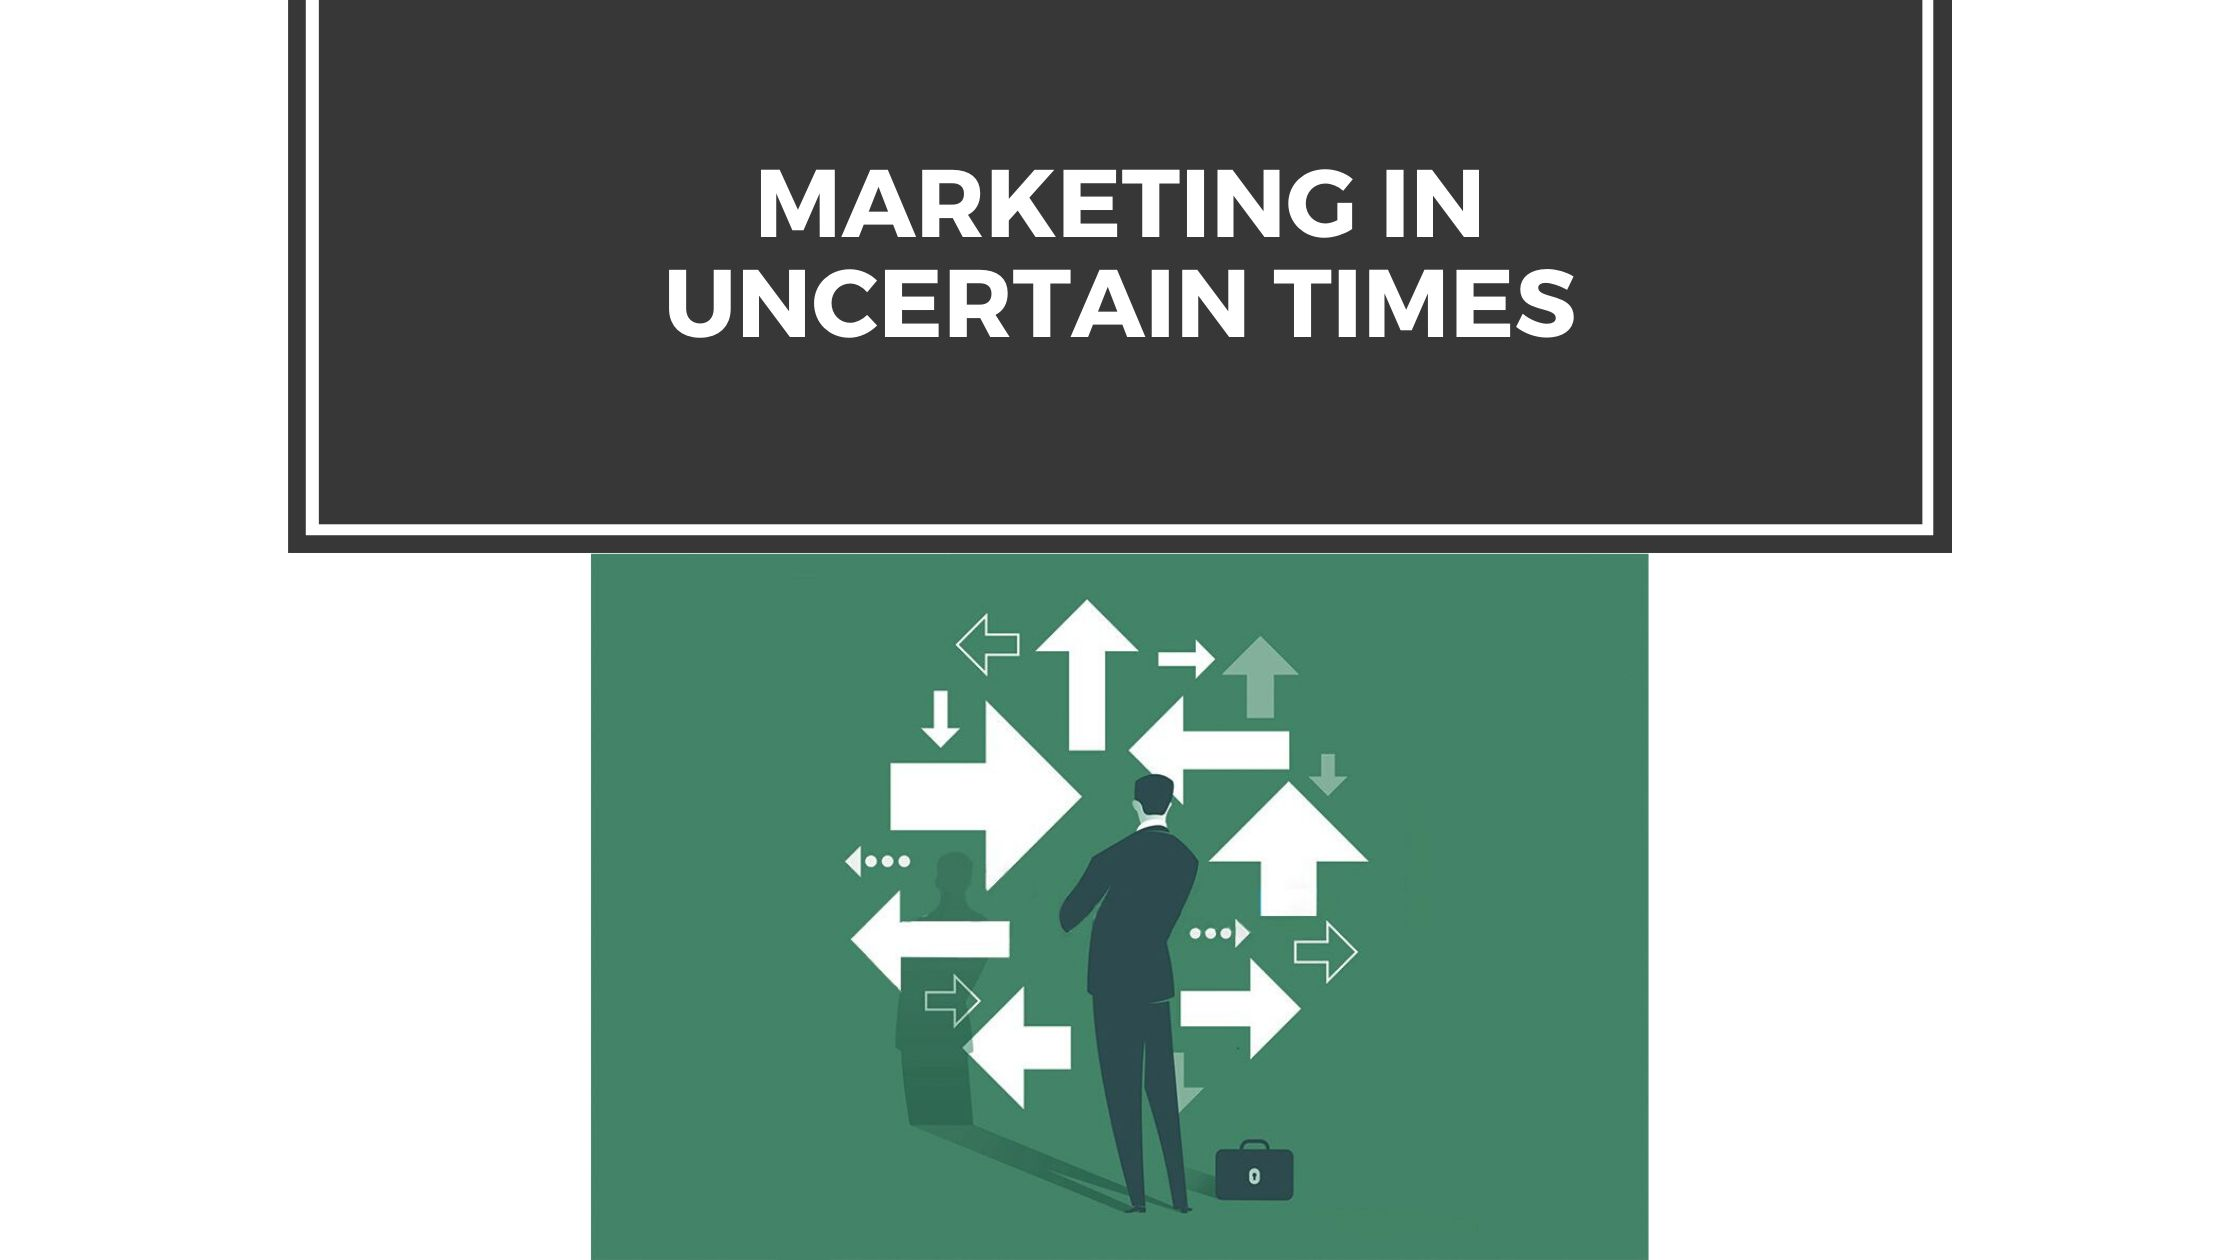 /how-to-adapt-your-marketing-in-uncertain-times-p61i3efc feature image